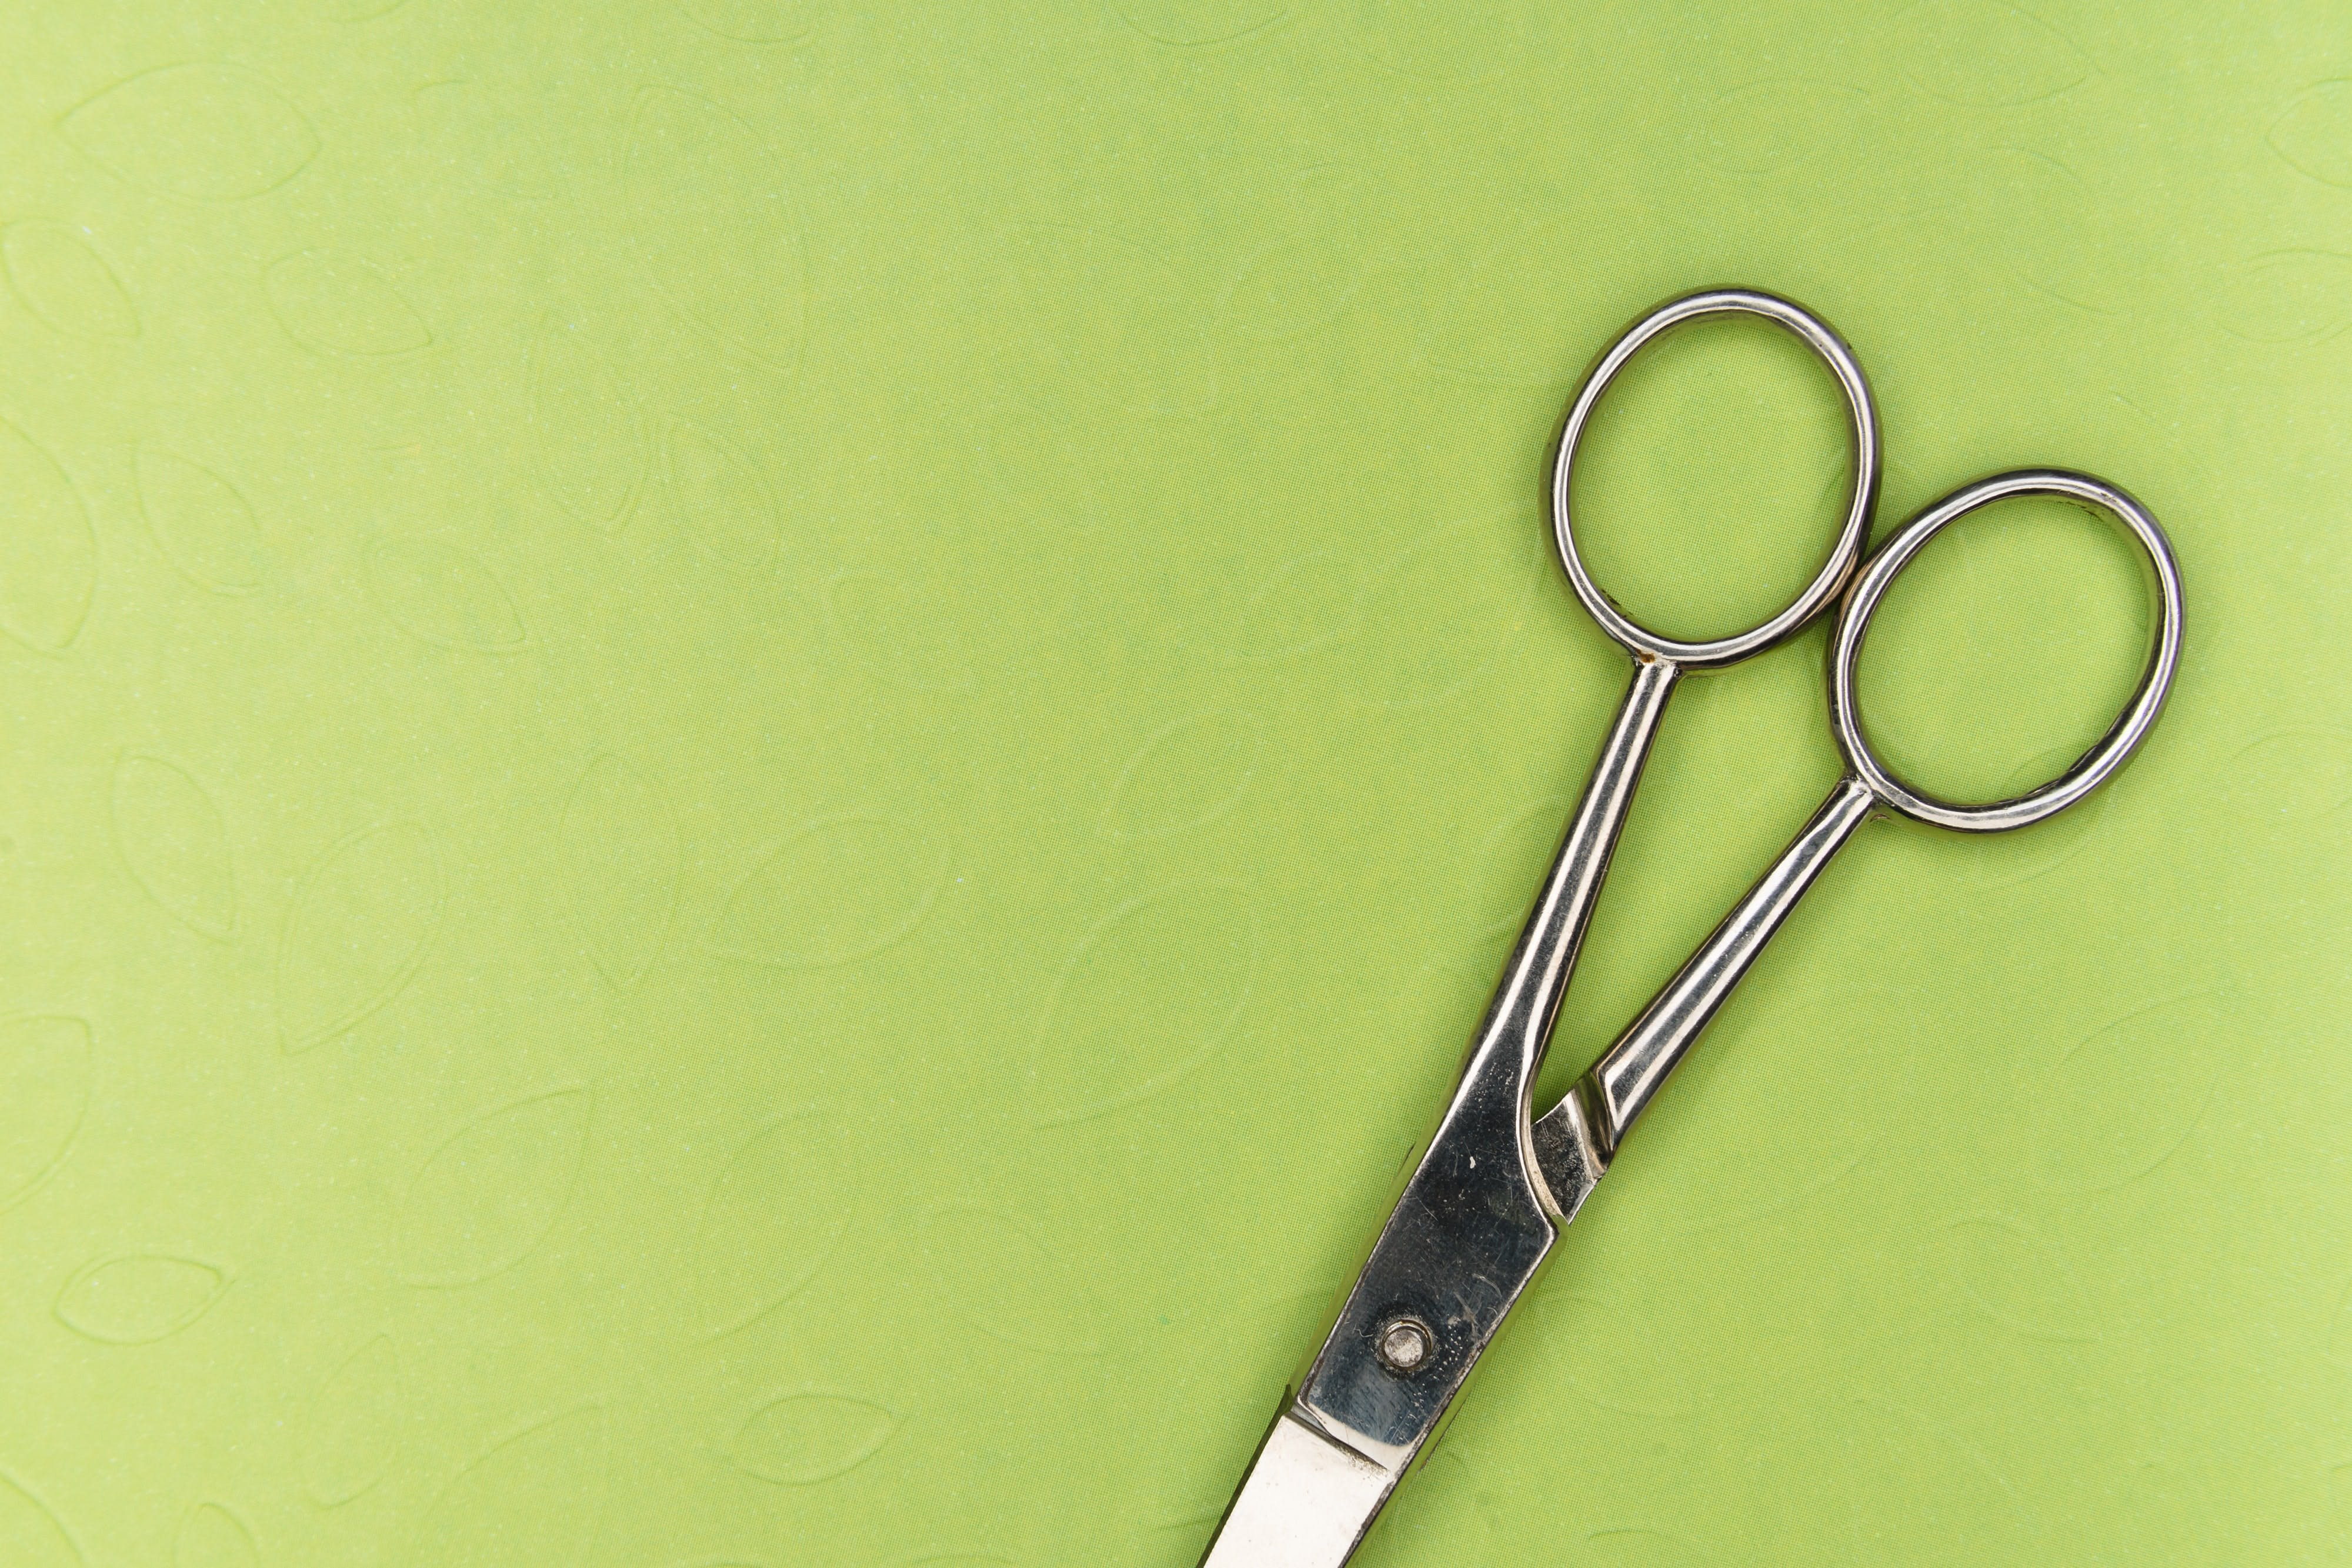 Pair of scissors on green background